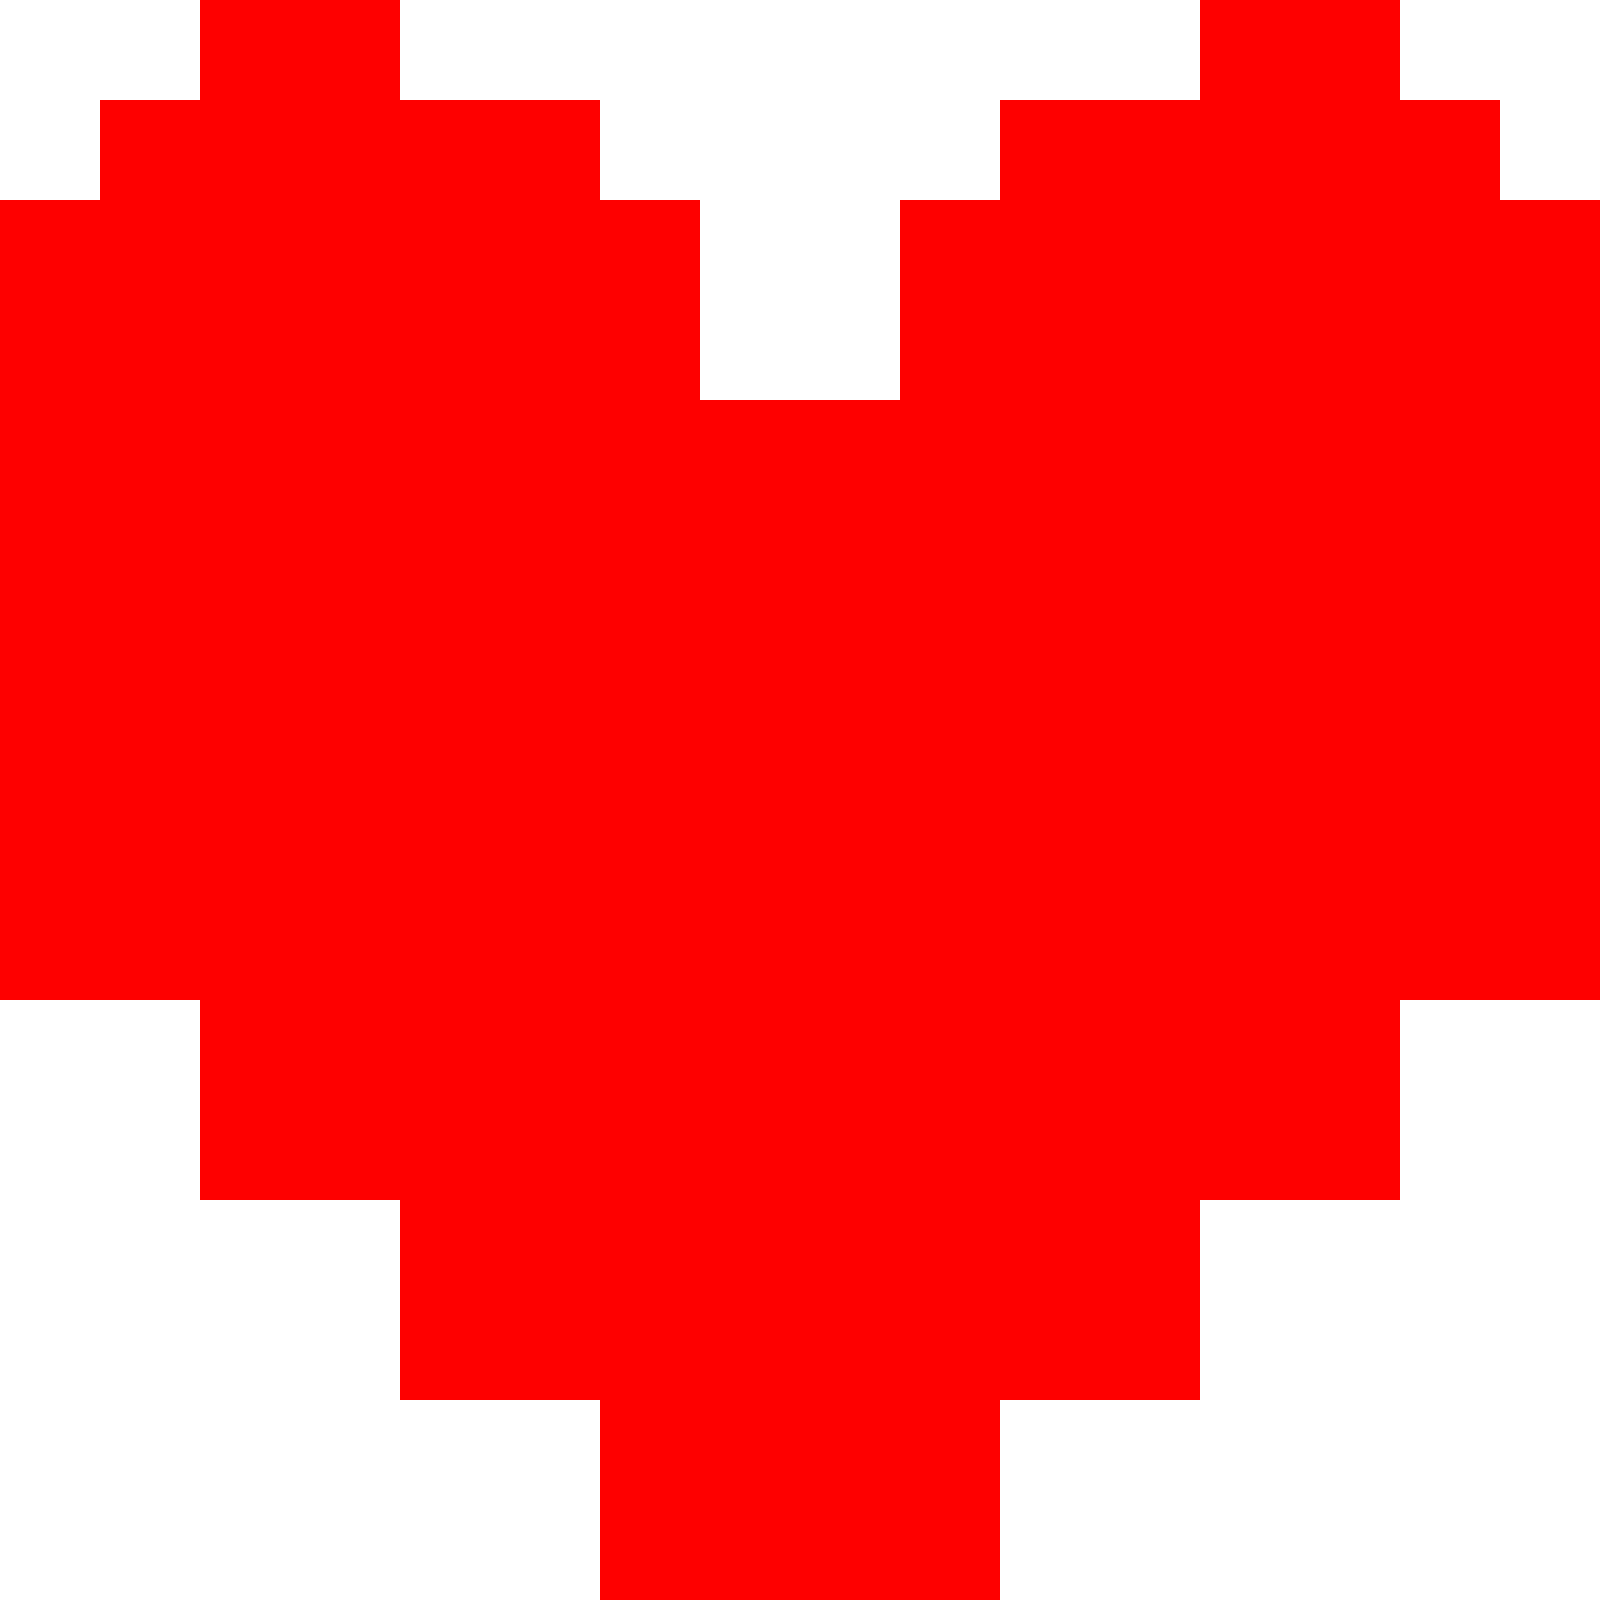 undertale red png